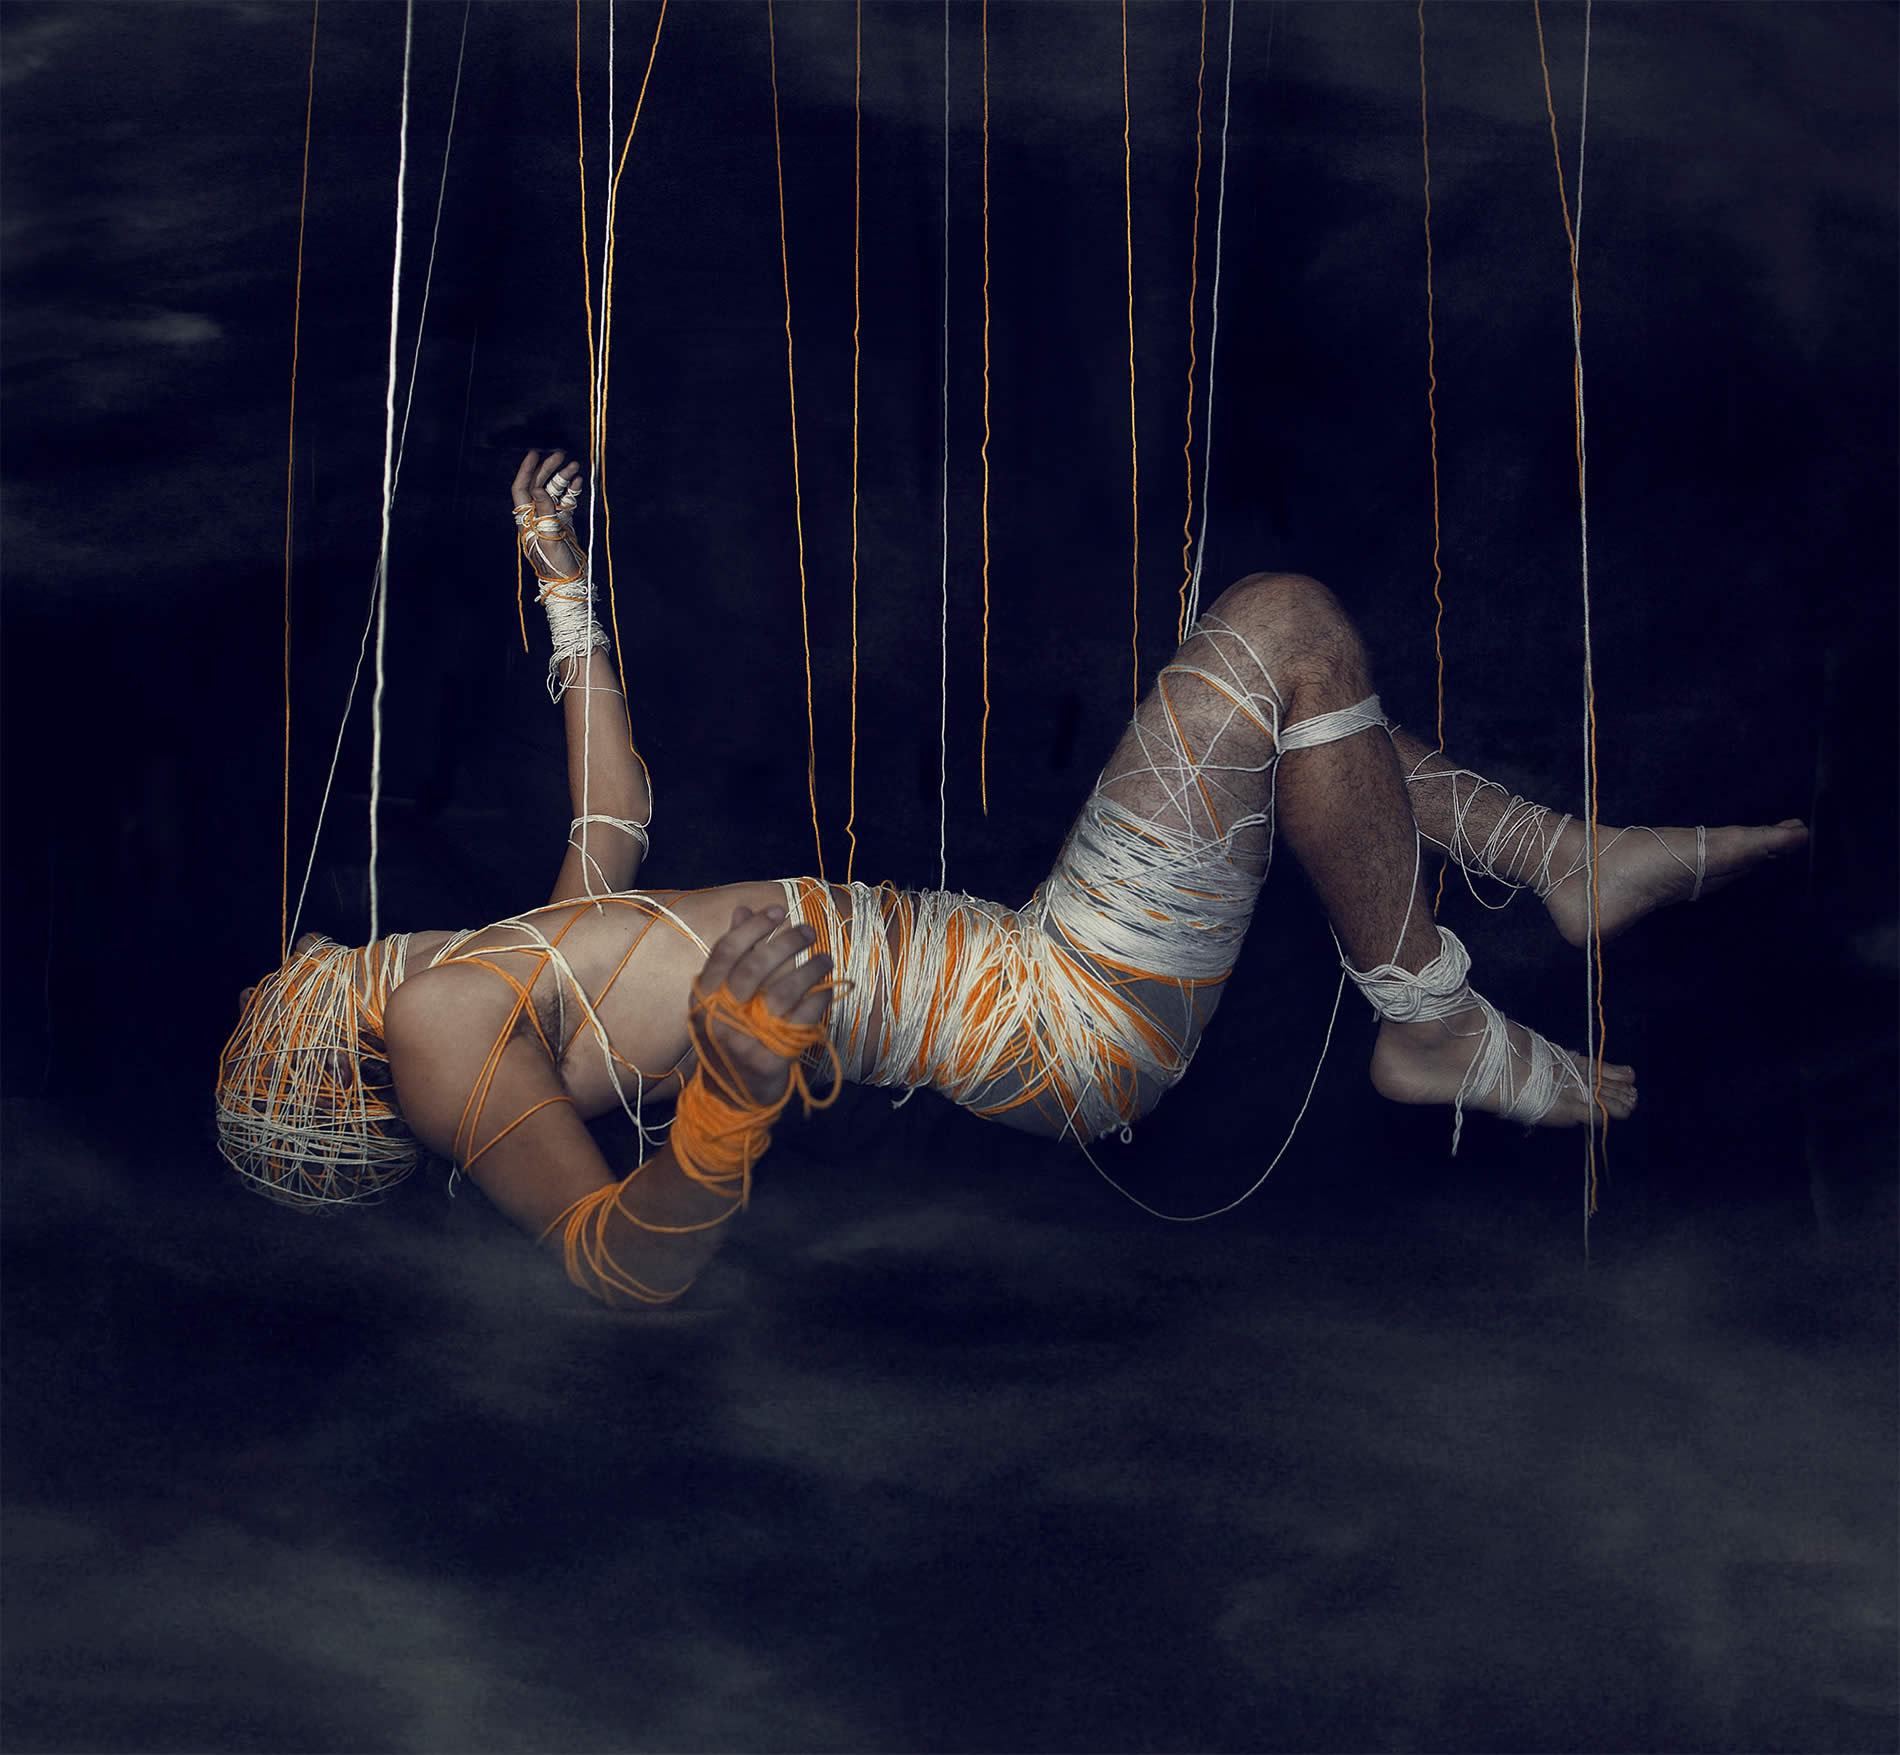 man hanging by strings, photo by kavan cardoza